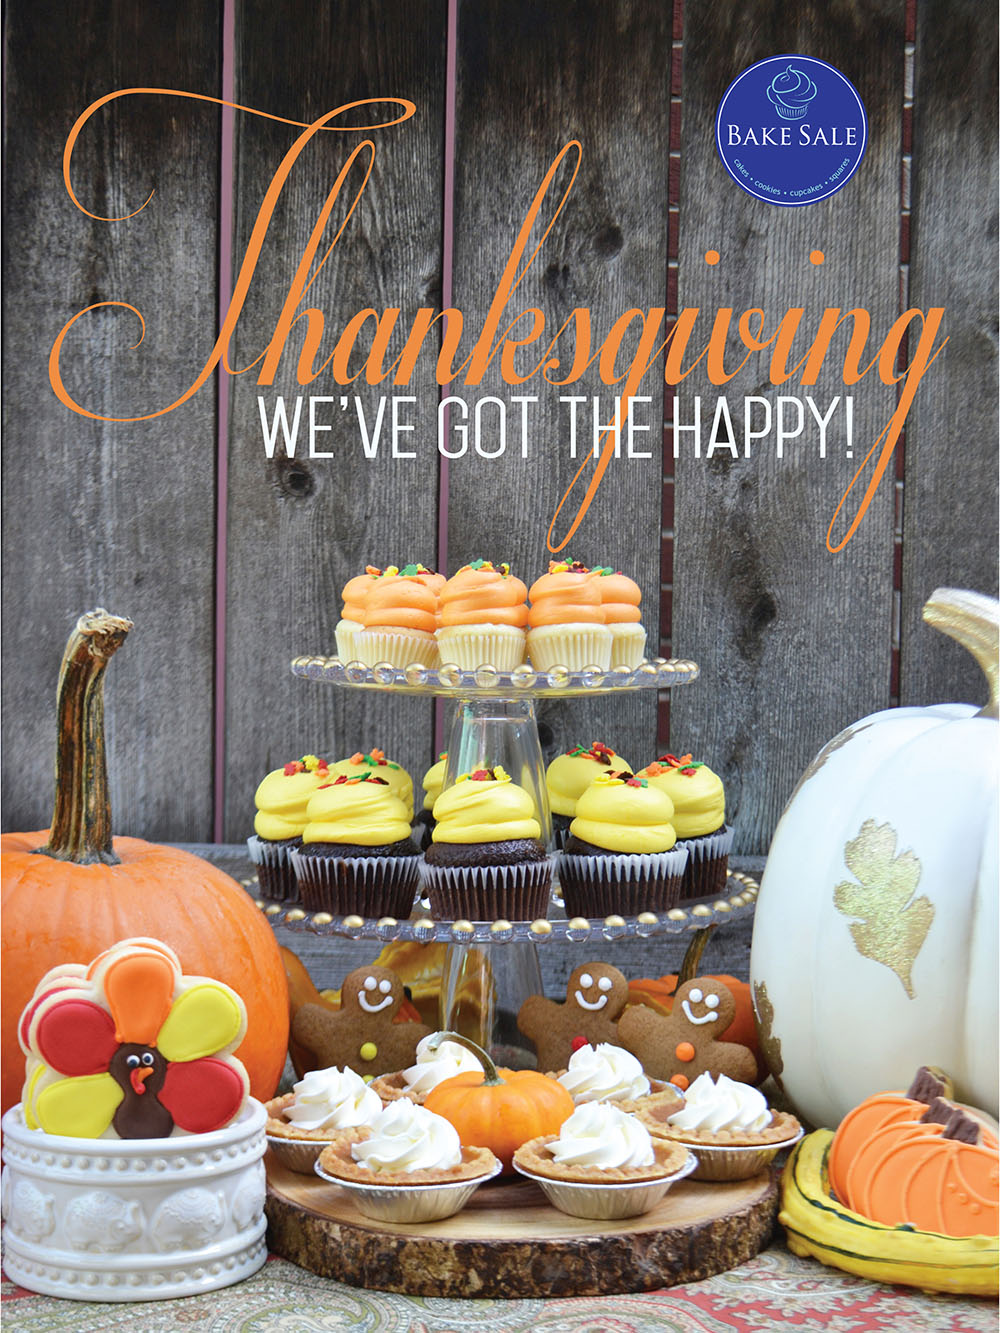 Bake-Sale-Toronto-Happy-Thanksgiving-Poster Pinterest.jpg